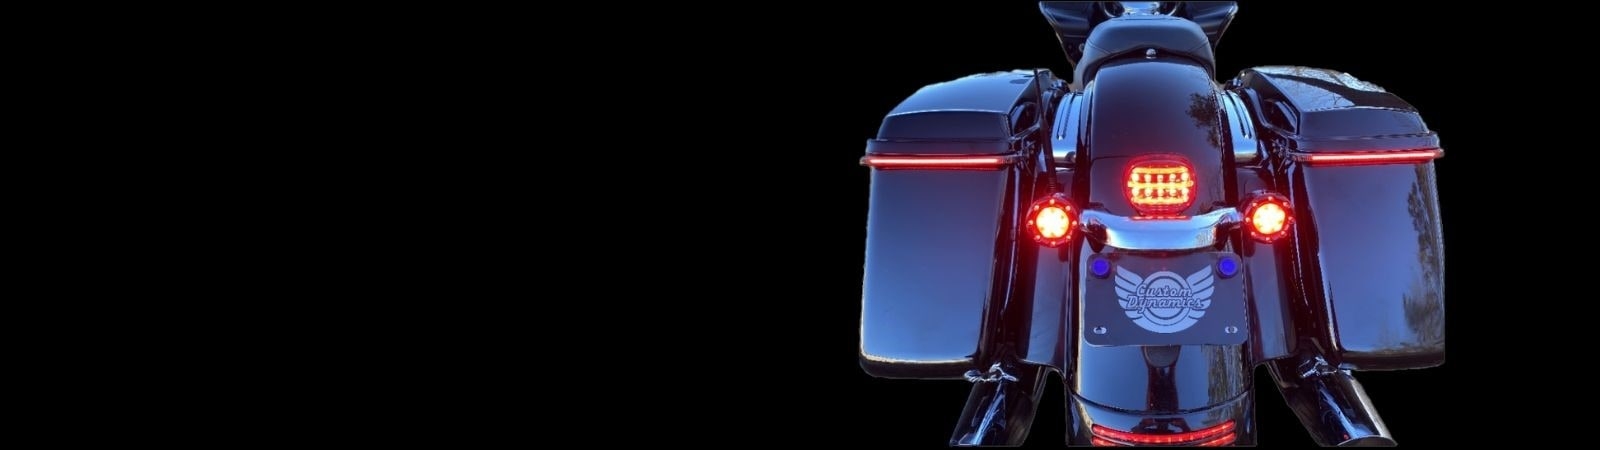 ProBEAM Motorcycle LED Taillights